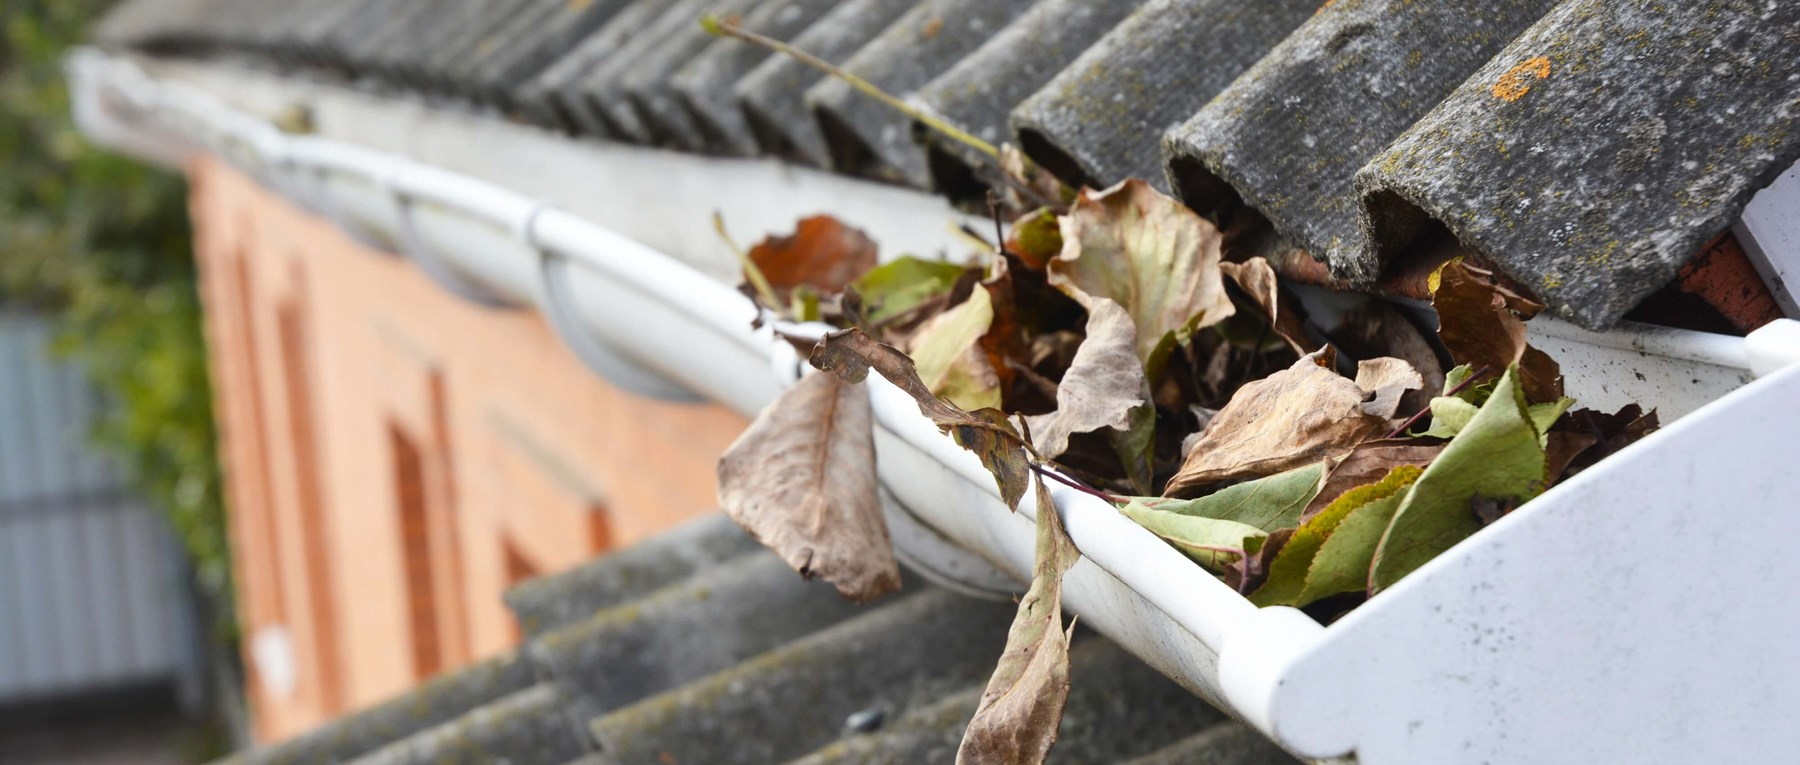 Leaves in a gutter